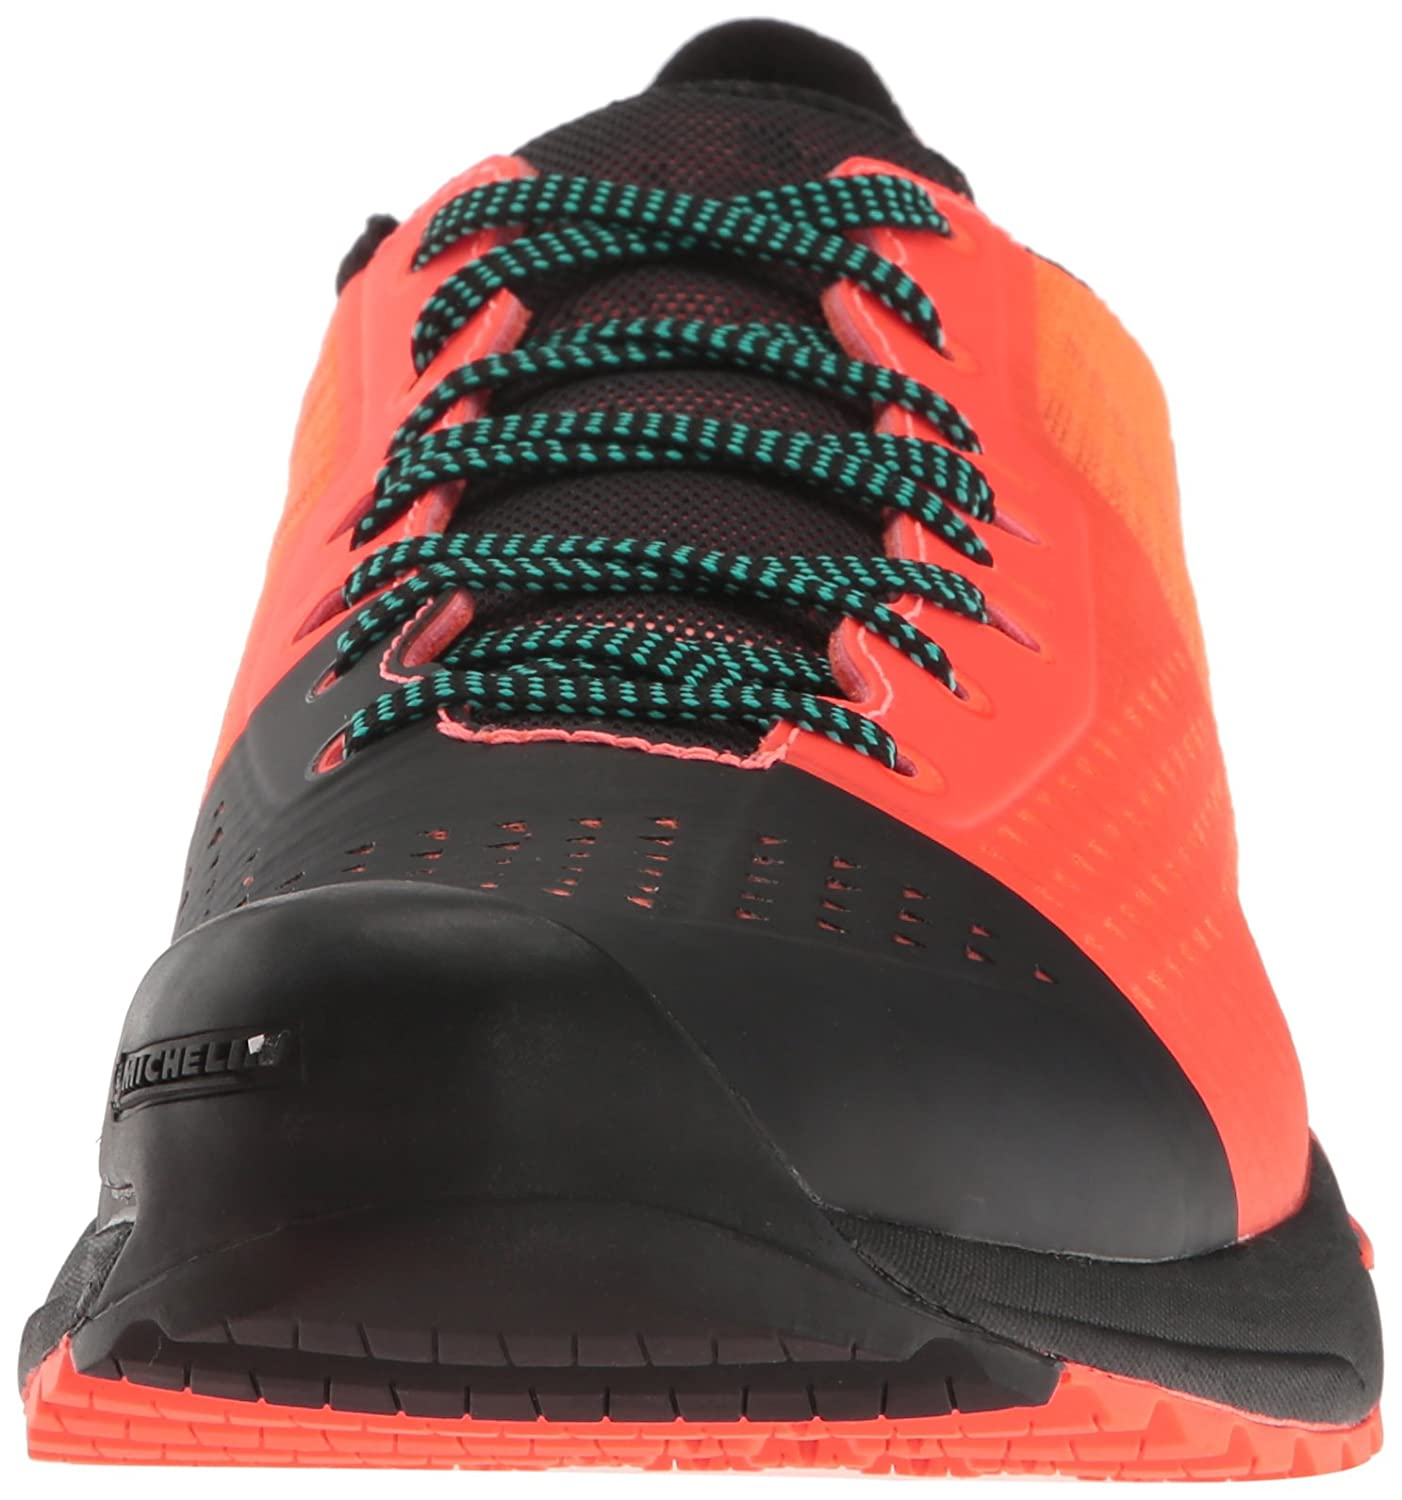 Sous Les Chaussures De Trail Running Armure Amazone pQCY6Xb